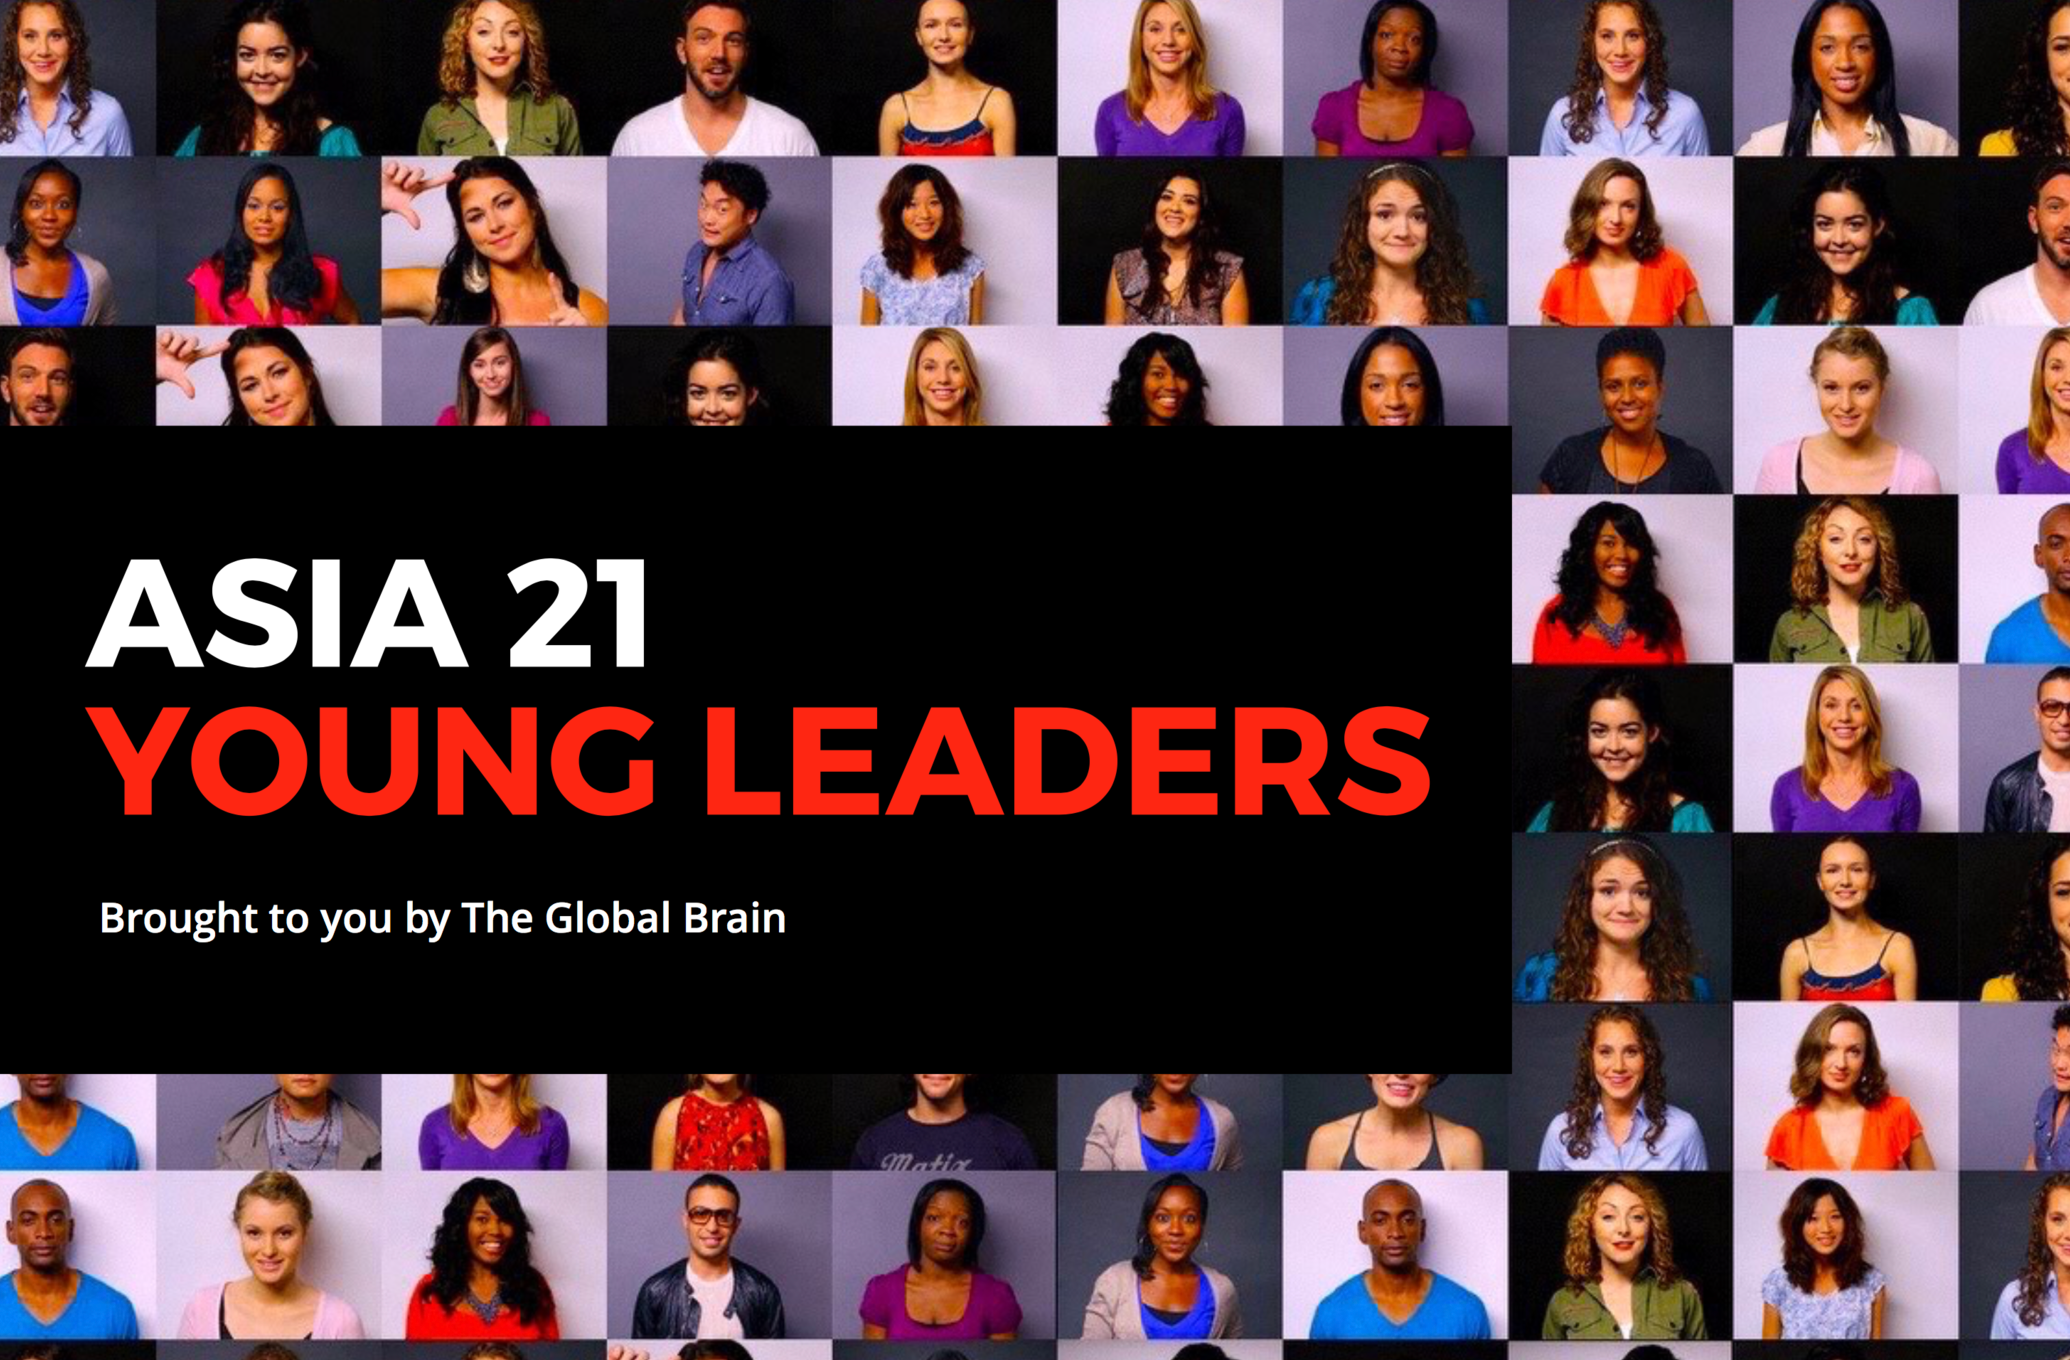 21 YOUNG LEADERS/ HONG KKONG, CHINA